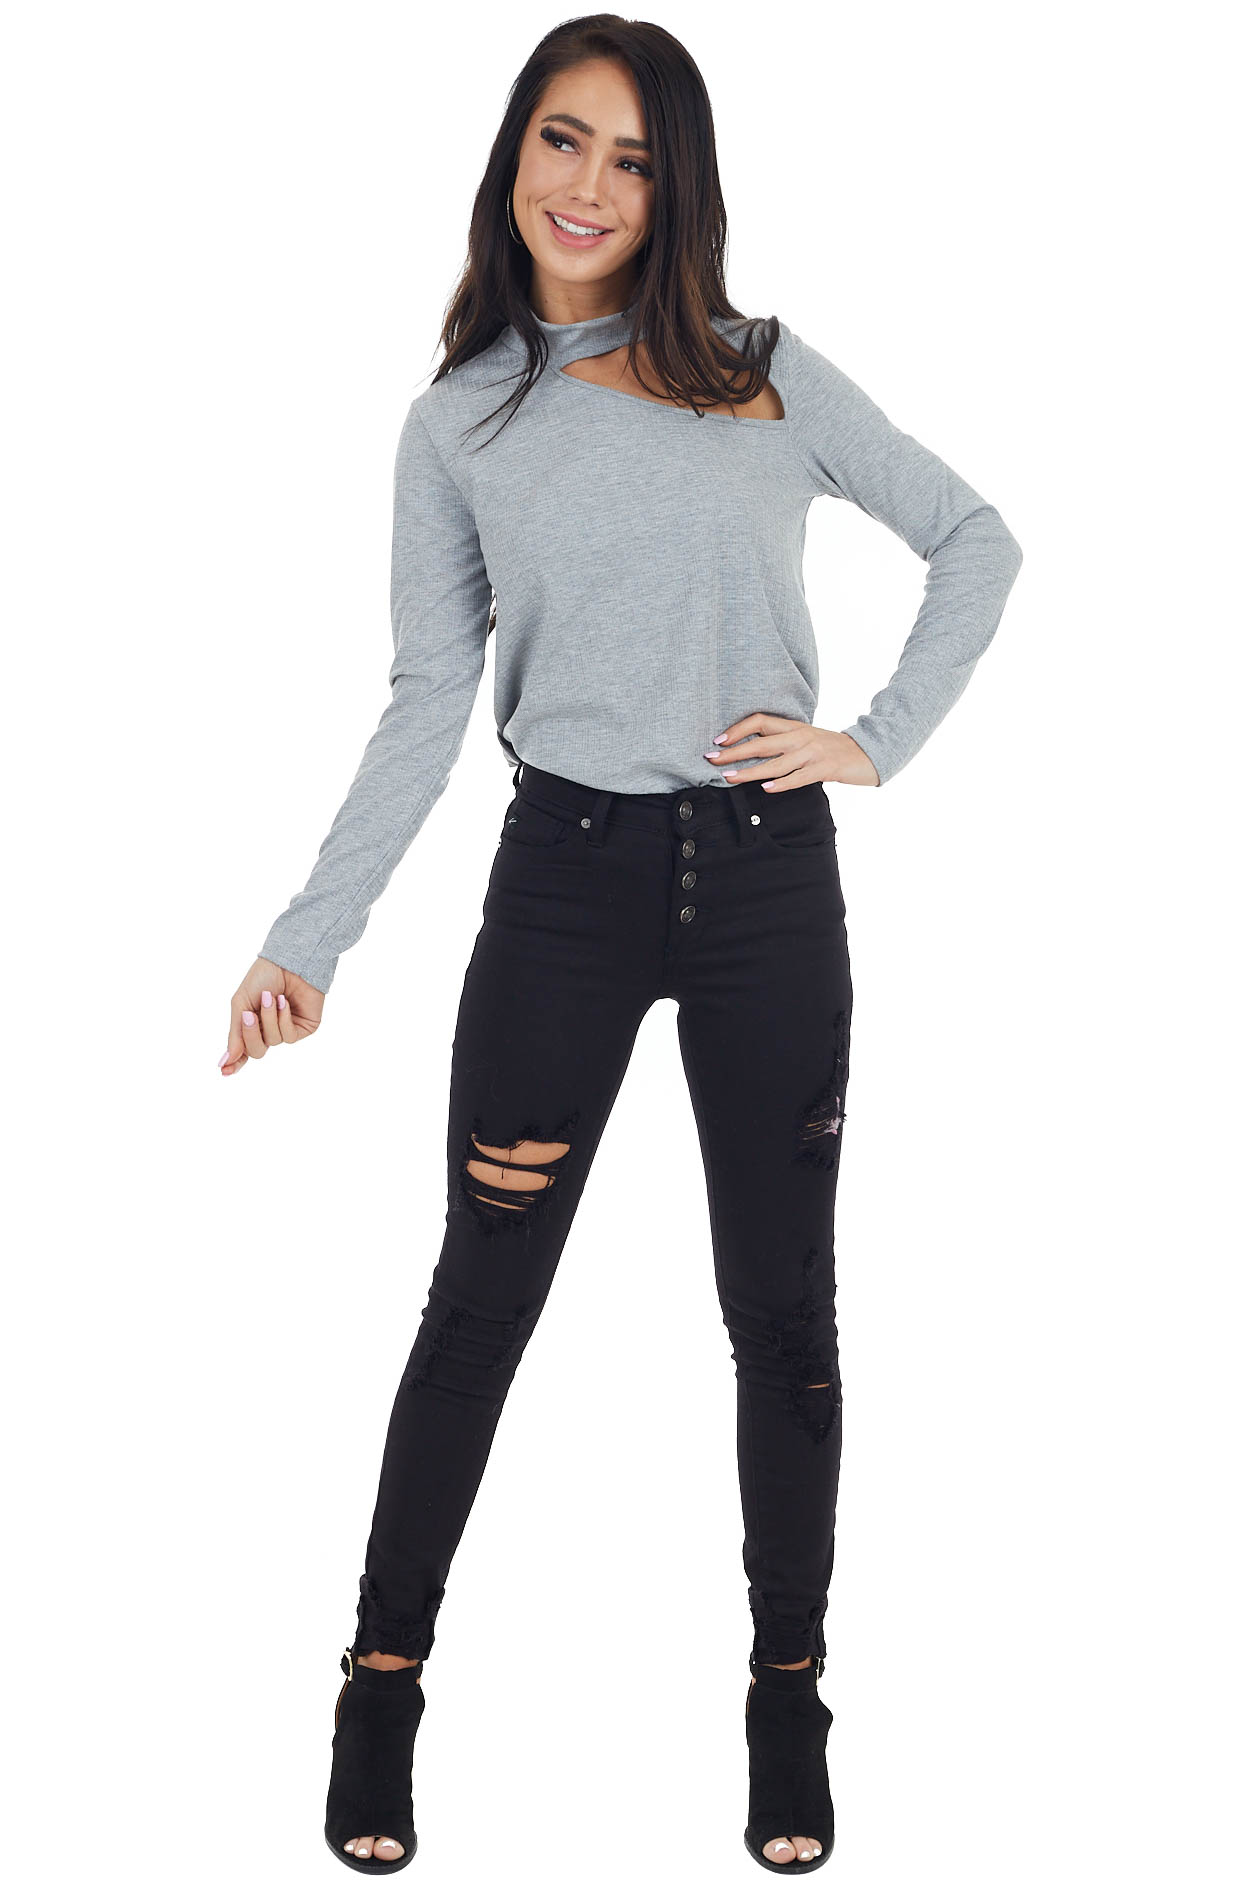 Heather Grey Long Sleeve Knit Top with Cut Out Detail